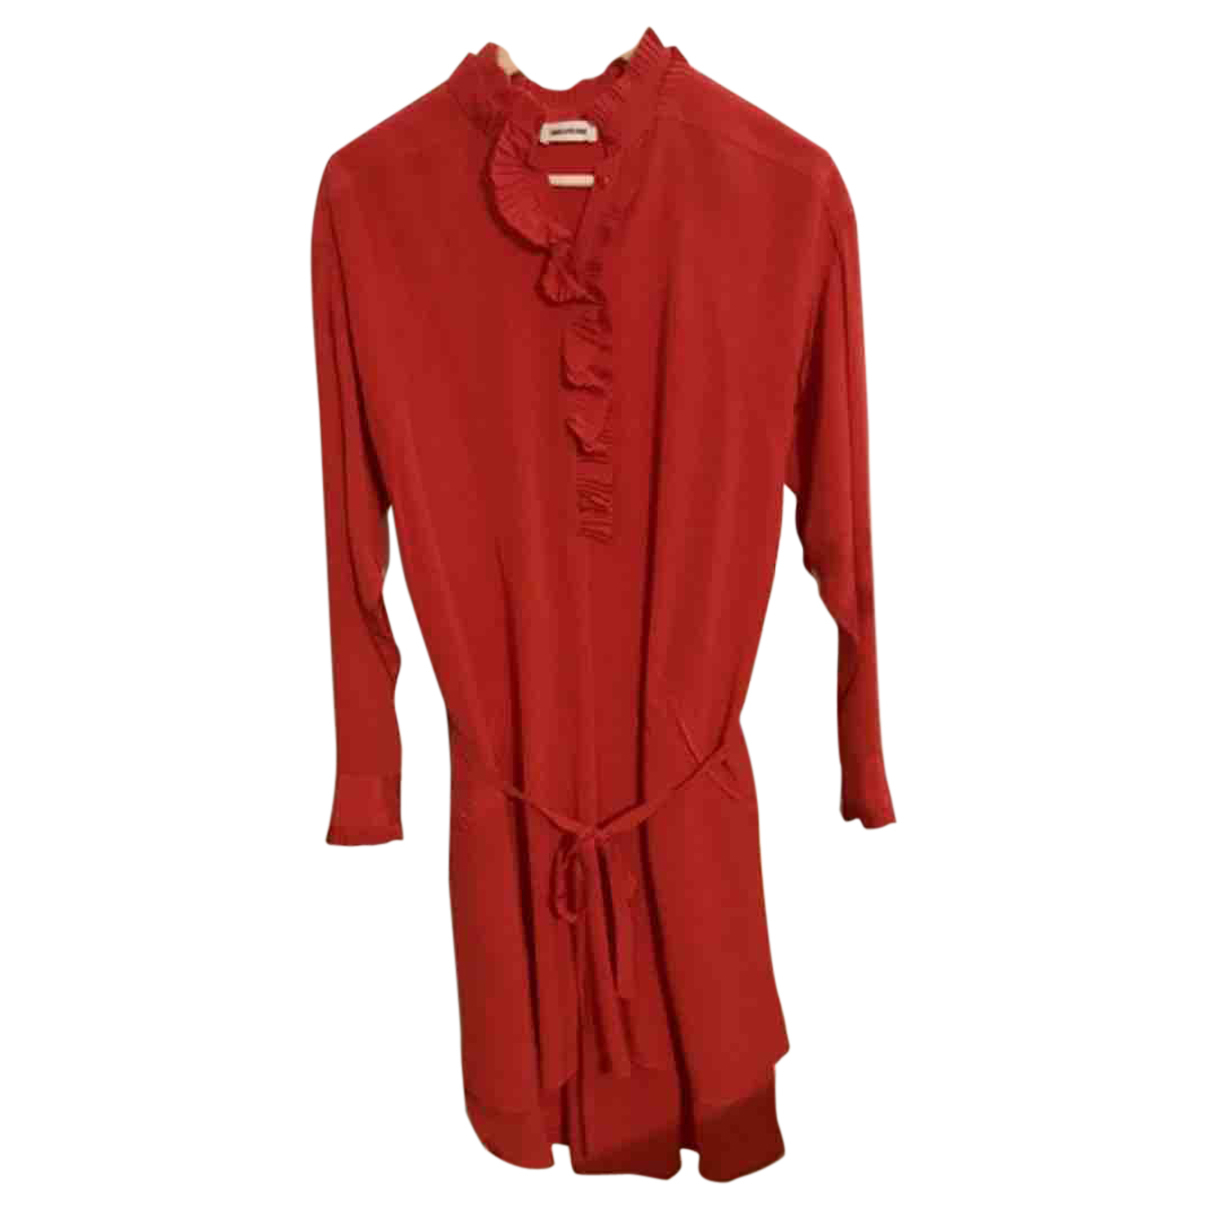 Zadig & Voltaire N Red Silk dress for Women 36 FR